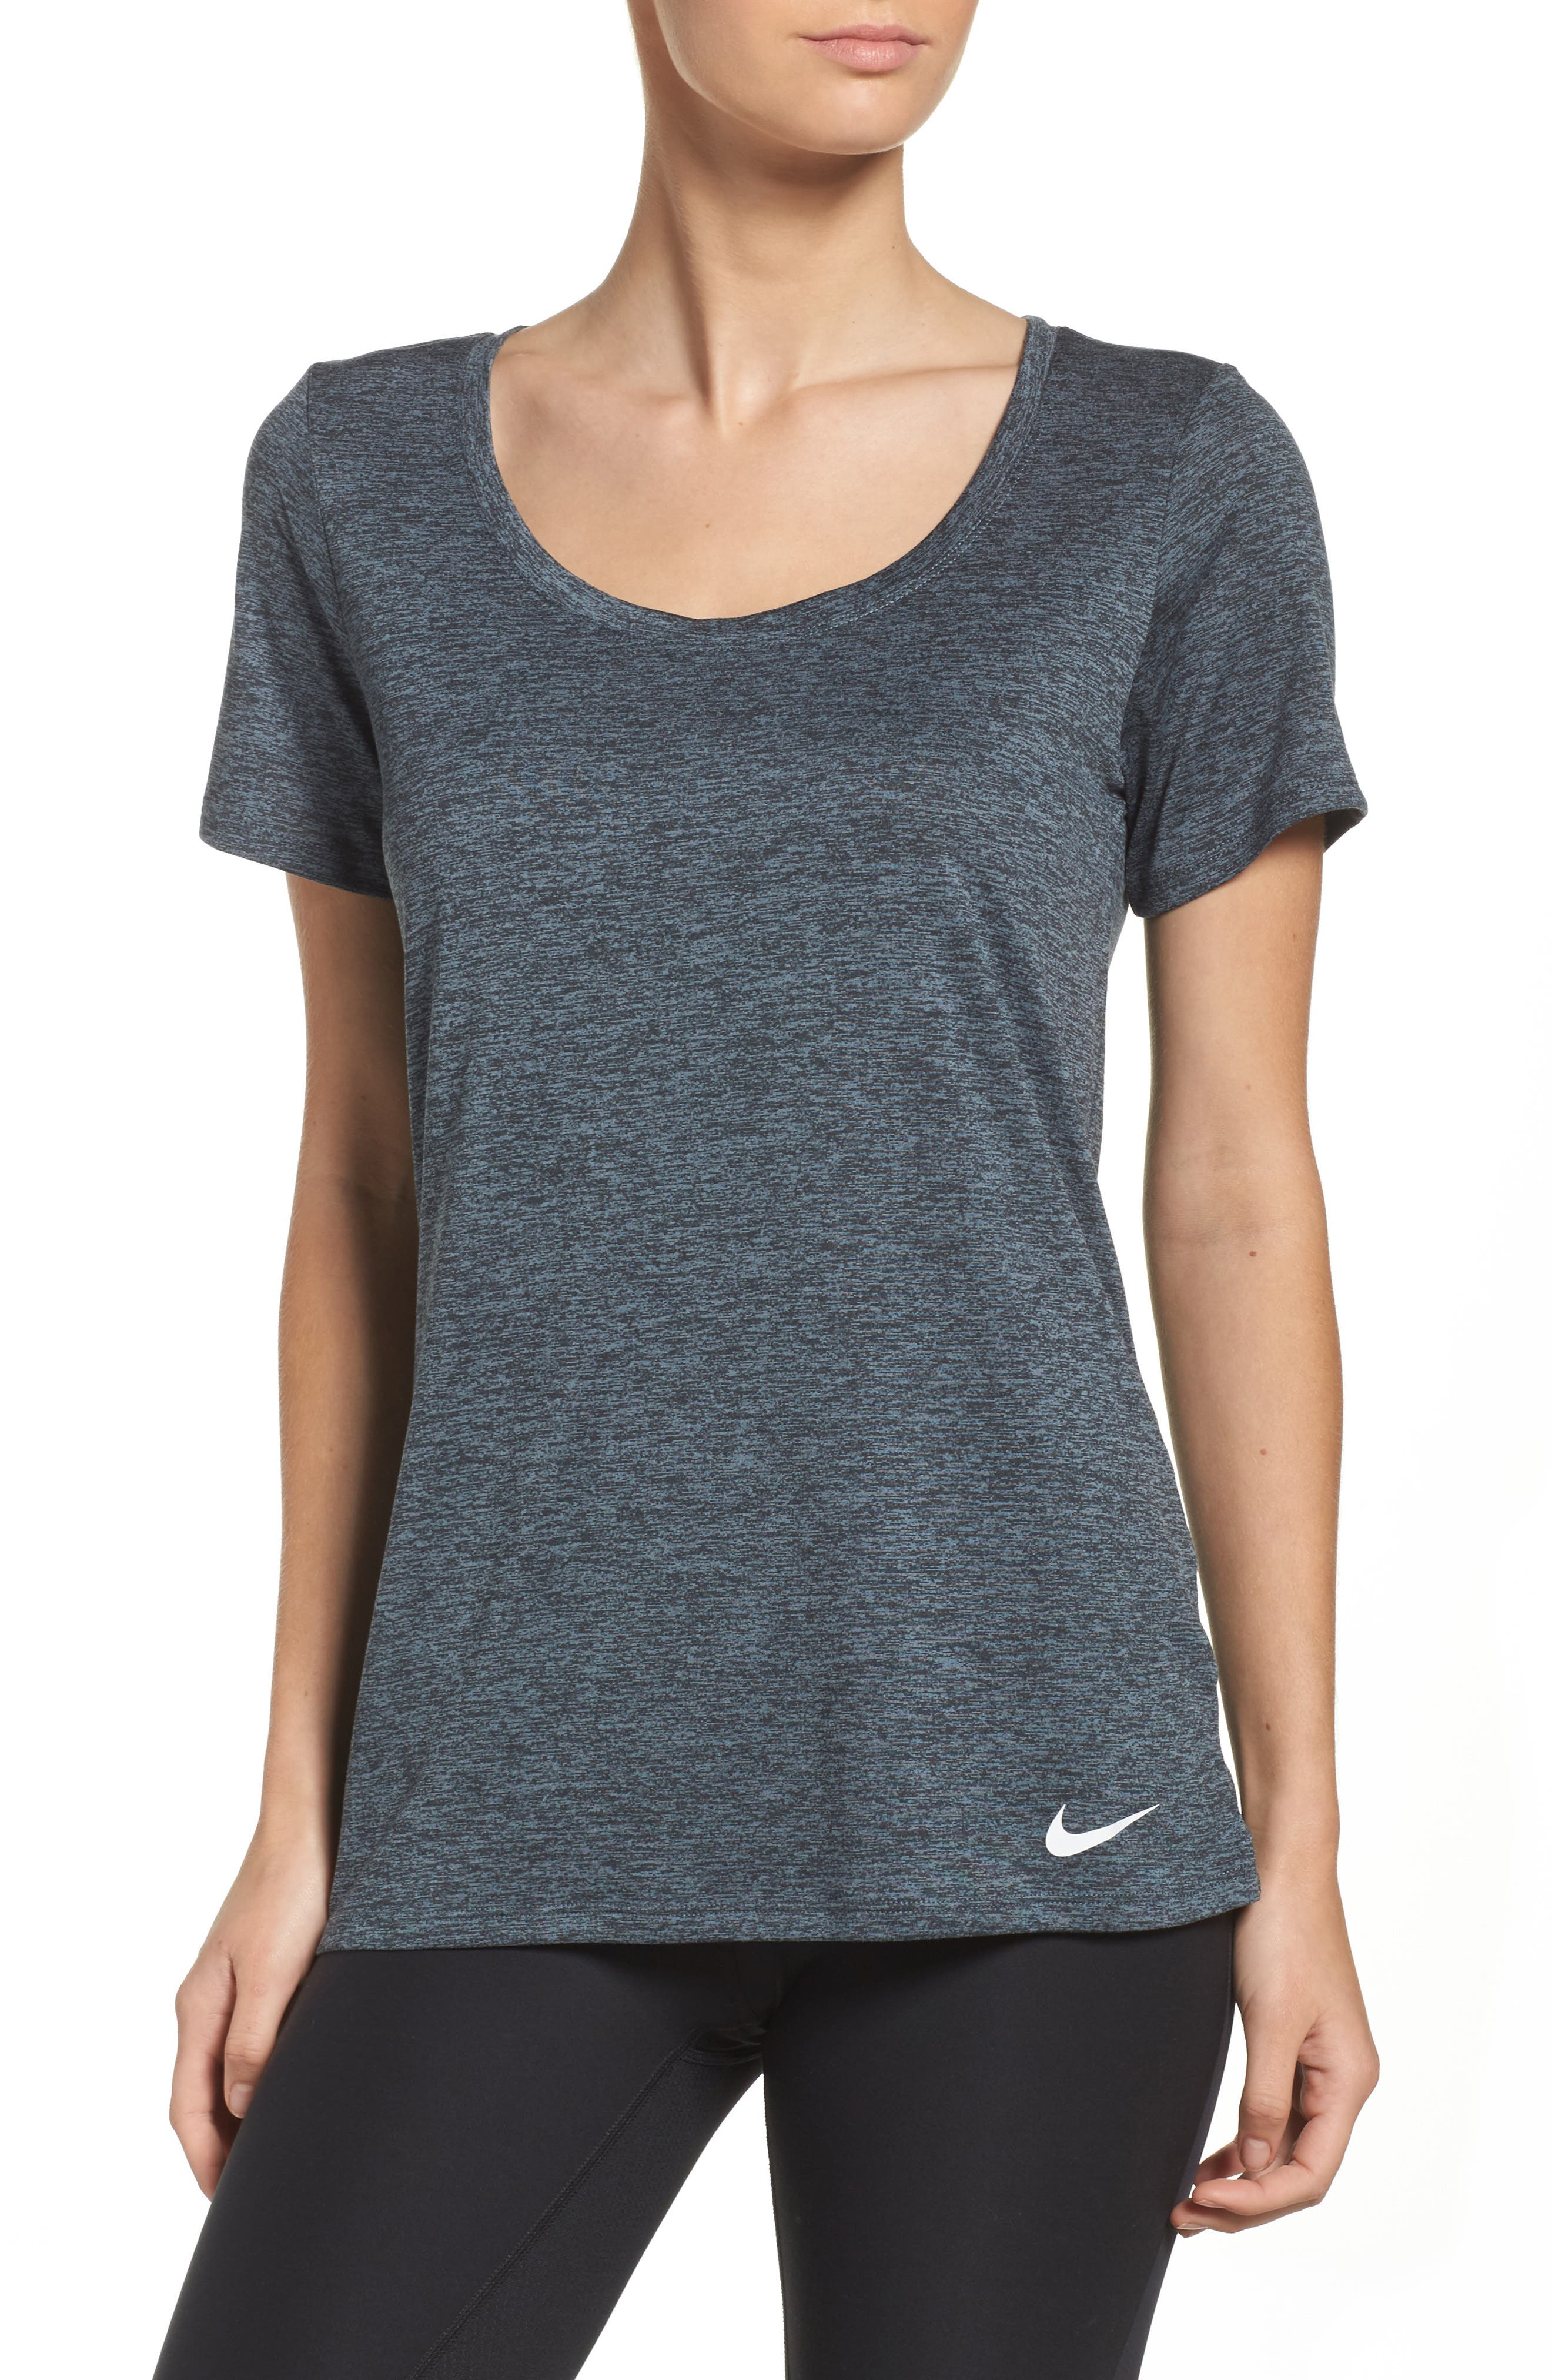 Dry Training Tee,                         Main,                         color, BLACK/ COOL GREY/ WHITE